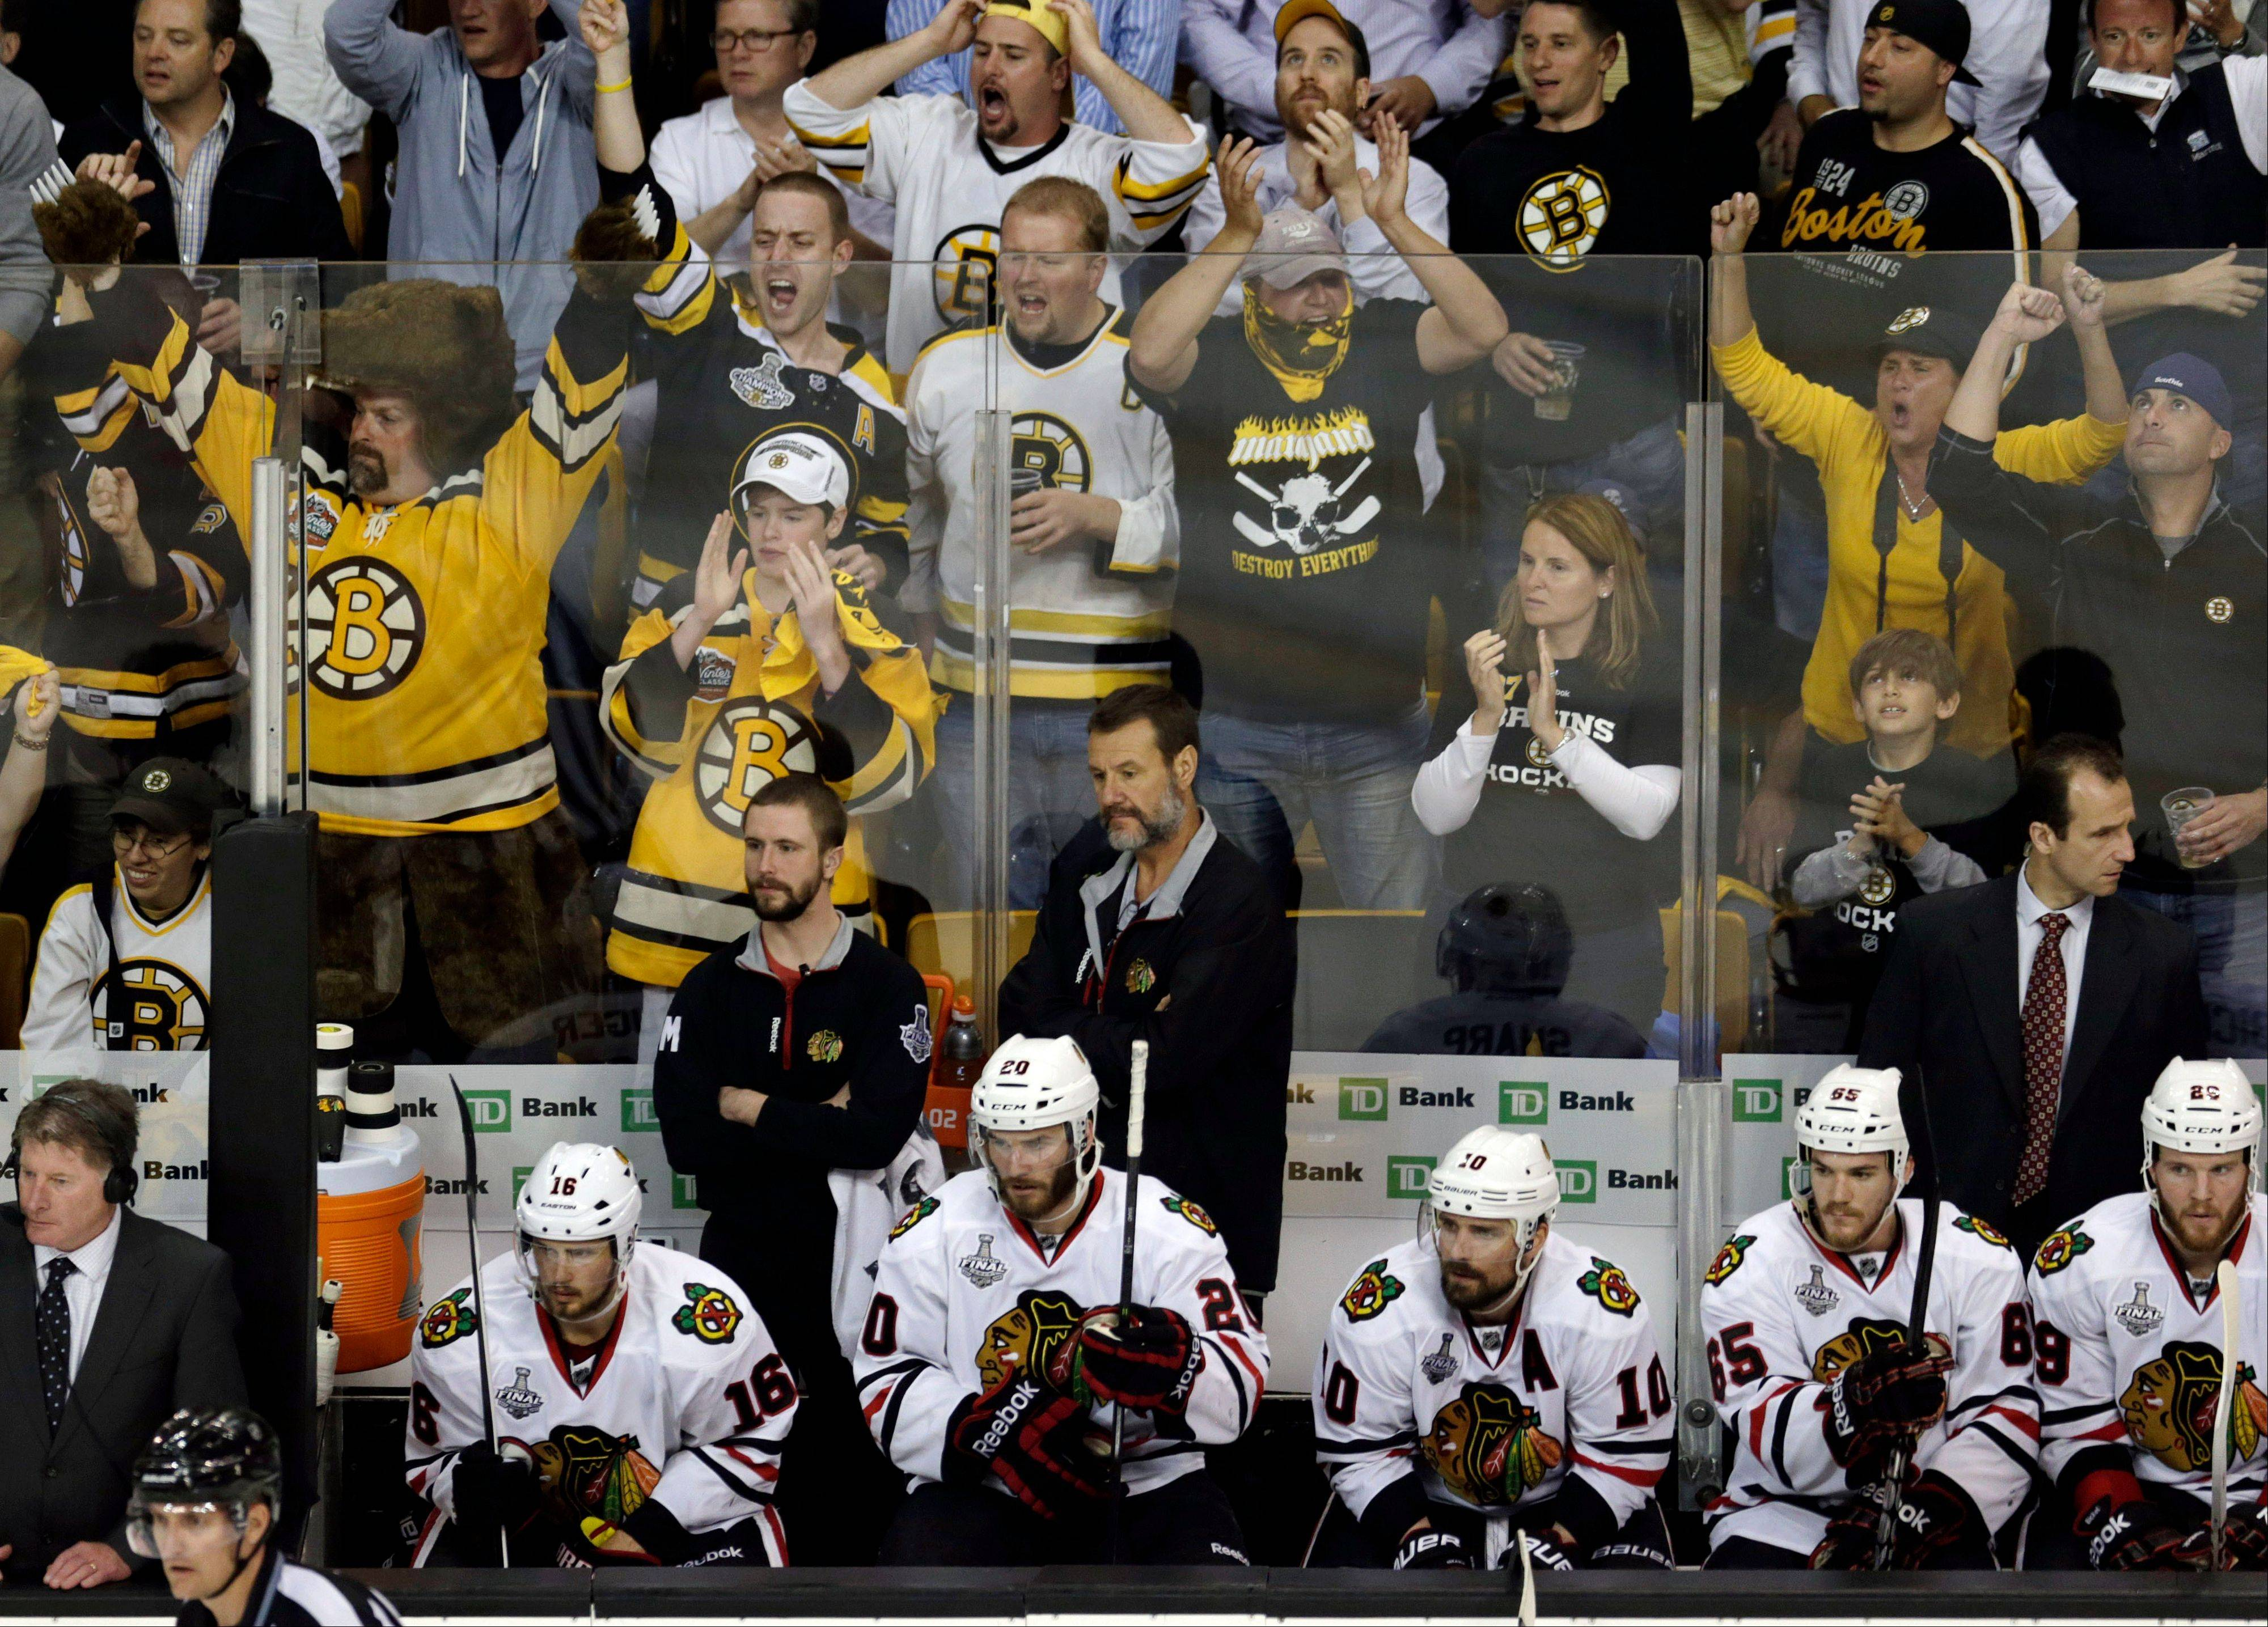 Fans' overreactions all part of playoff fun